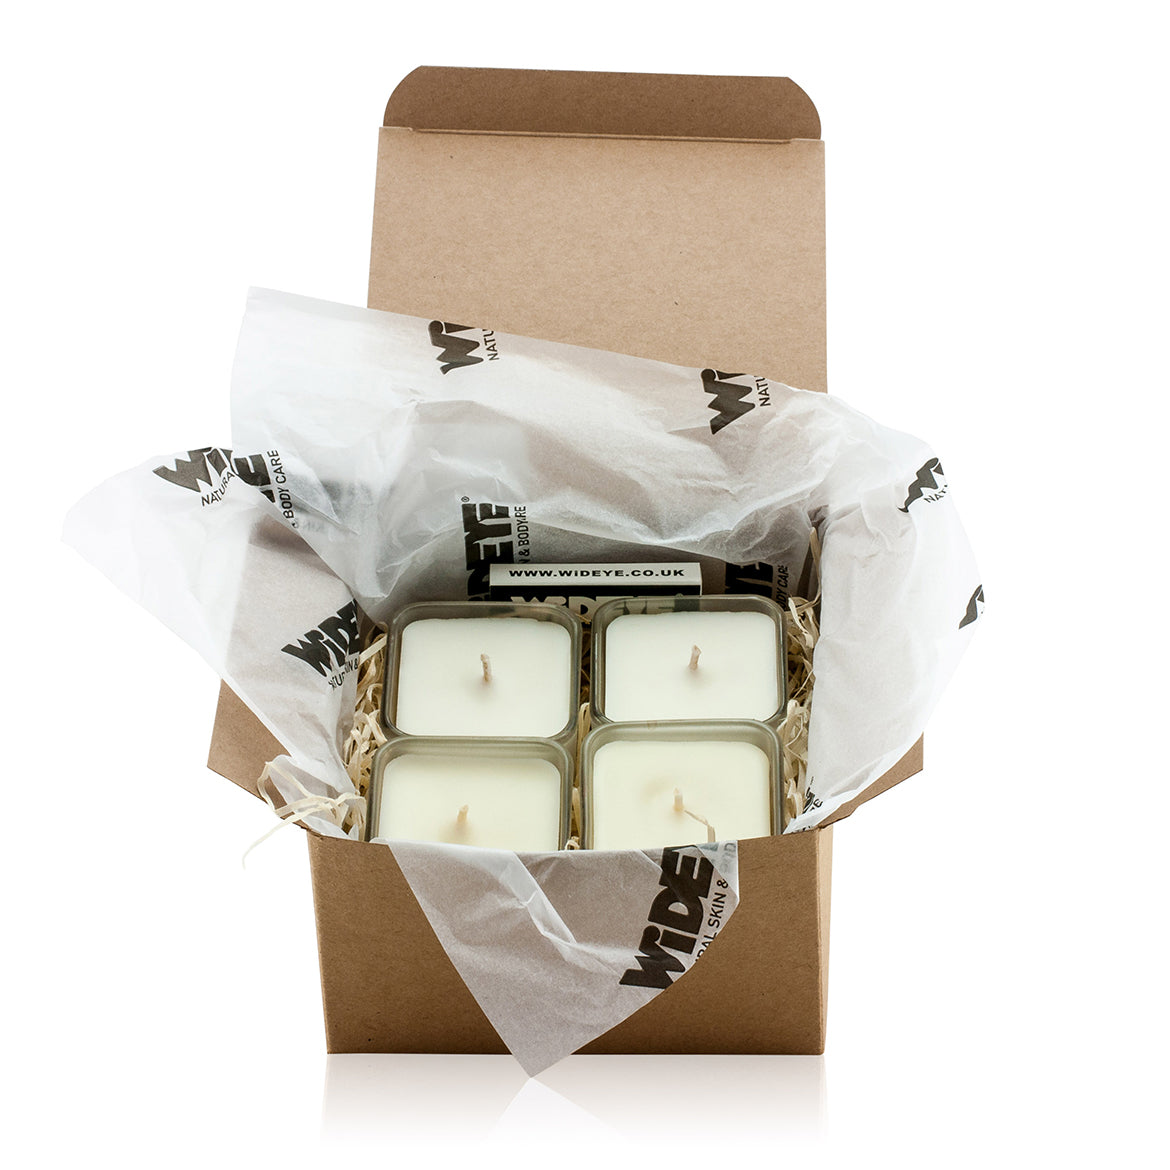 Natural vegan aromatherapy home gift box with four scented soy wax candles handmade by WiDEYE in Rye.